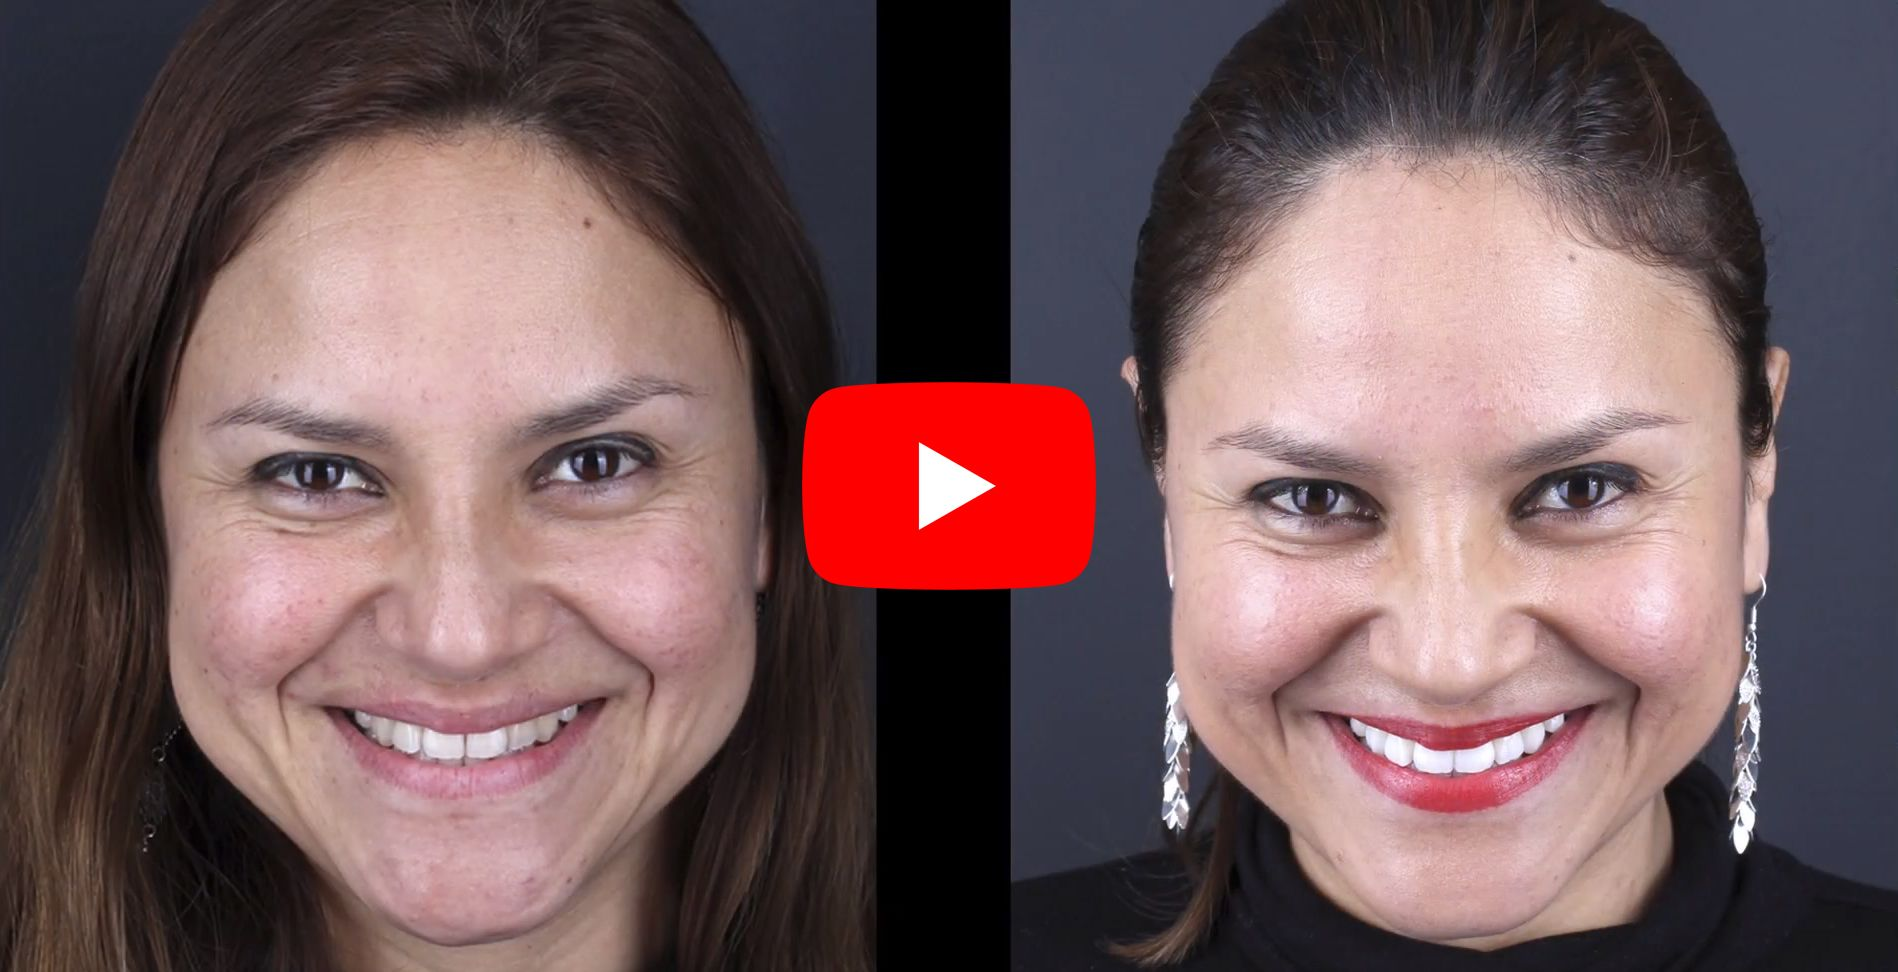 Video testimonials of patients treated at the Padrós dental whitening clinic